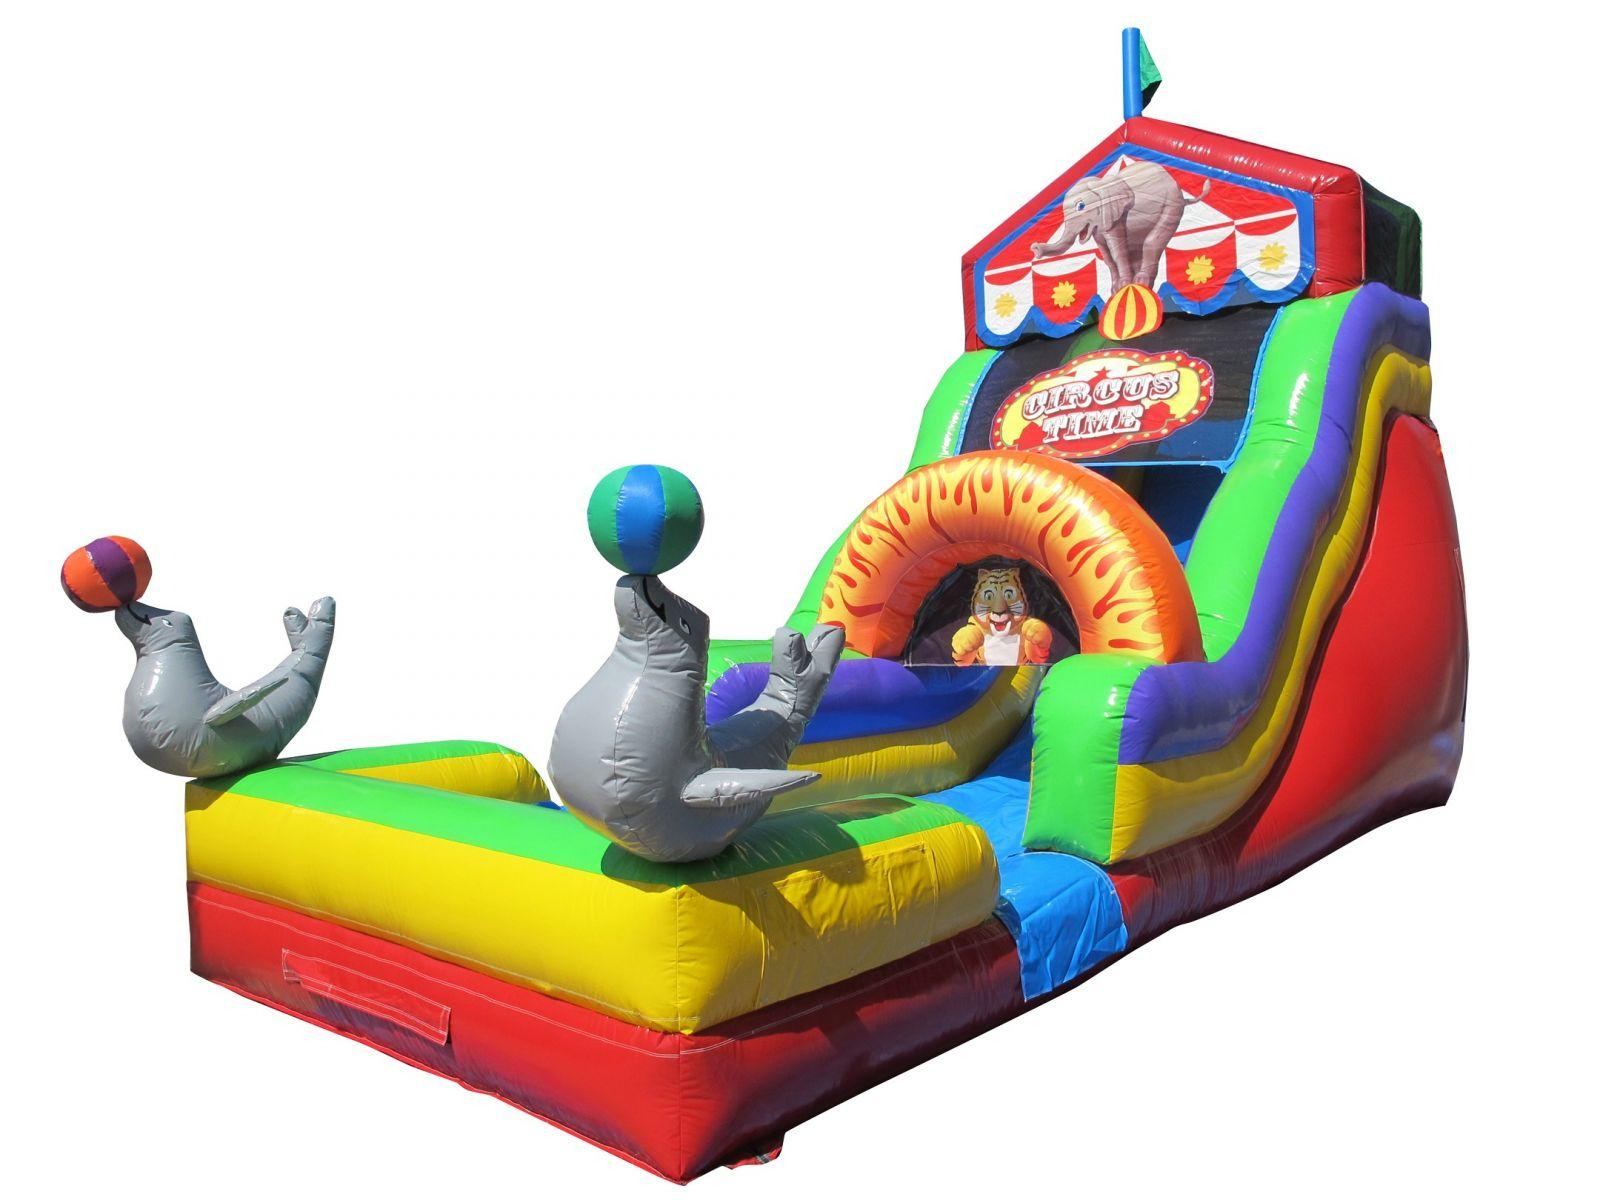 Circus Time Carnival Themed Waterslide Inflatable Rental Chicago IL